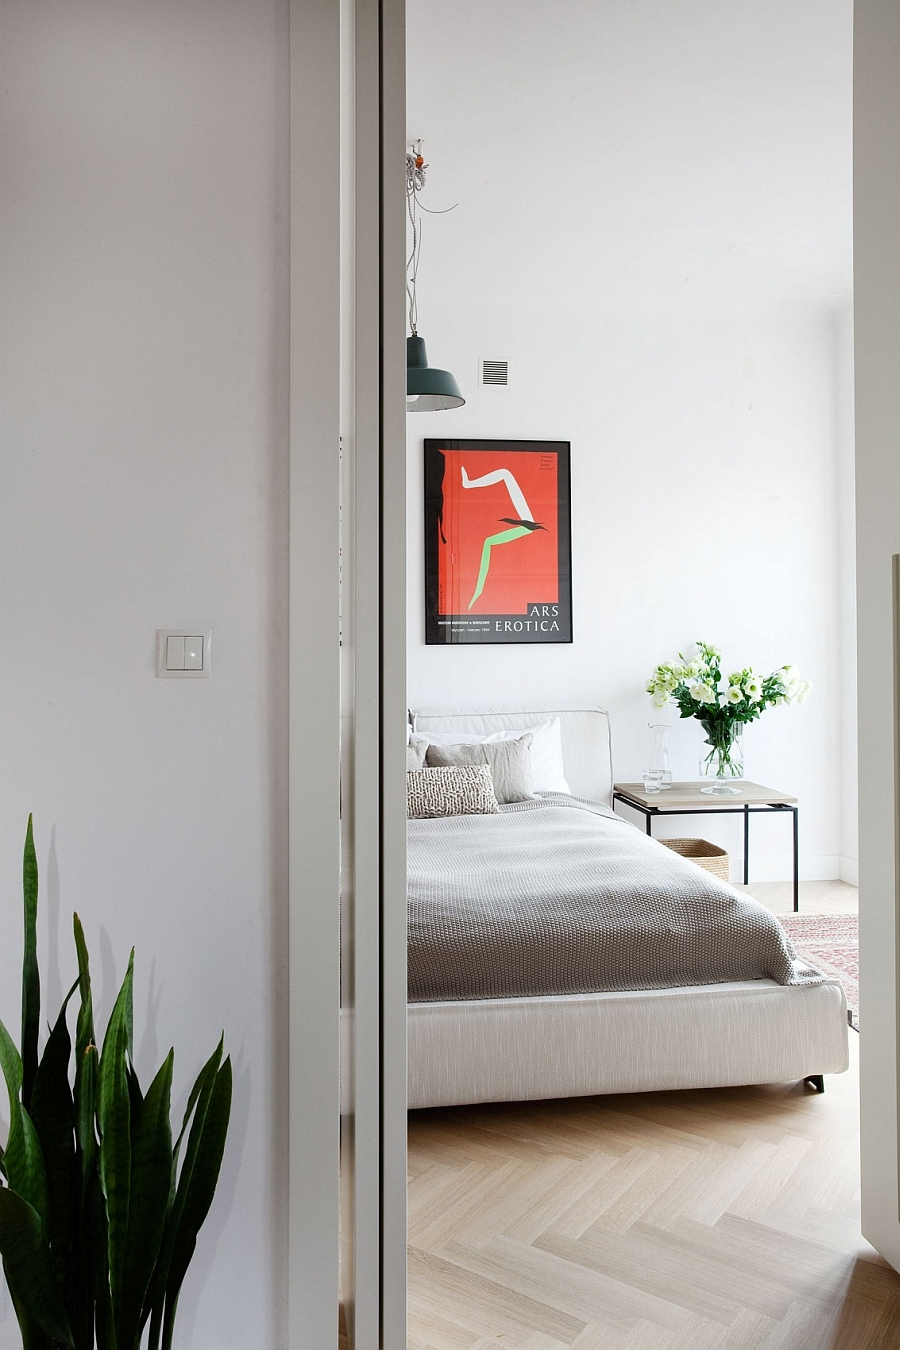 Smart side table and flowers add natural zest to the serene bedroom